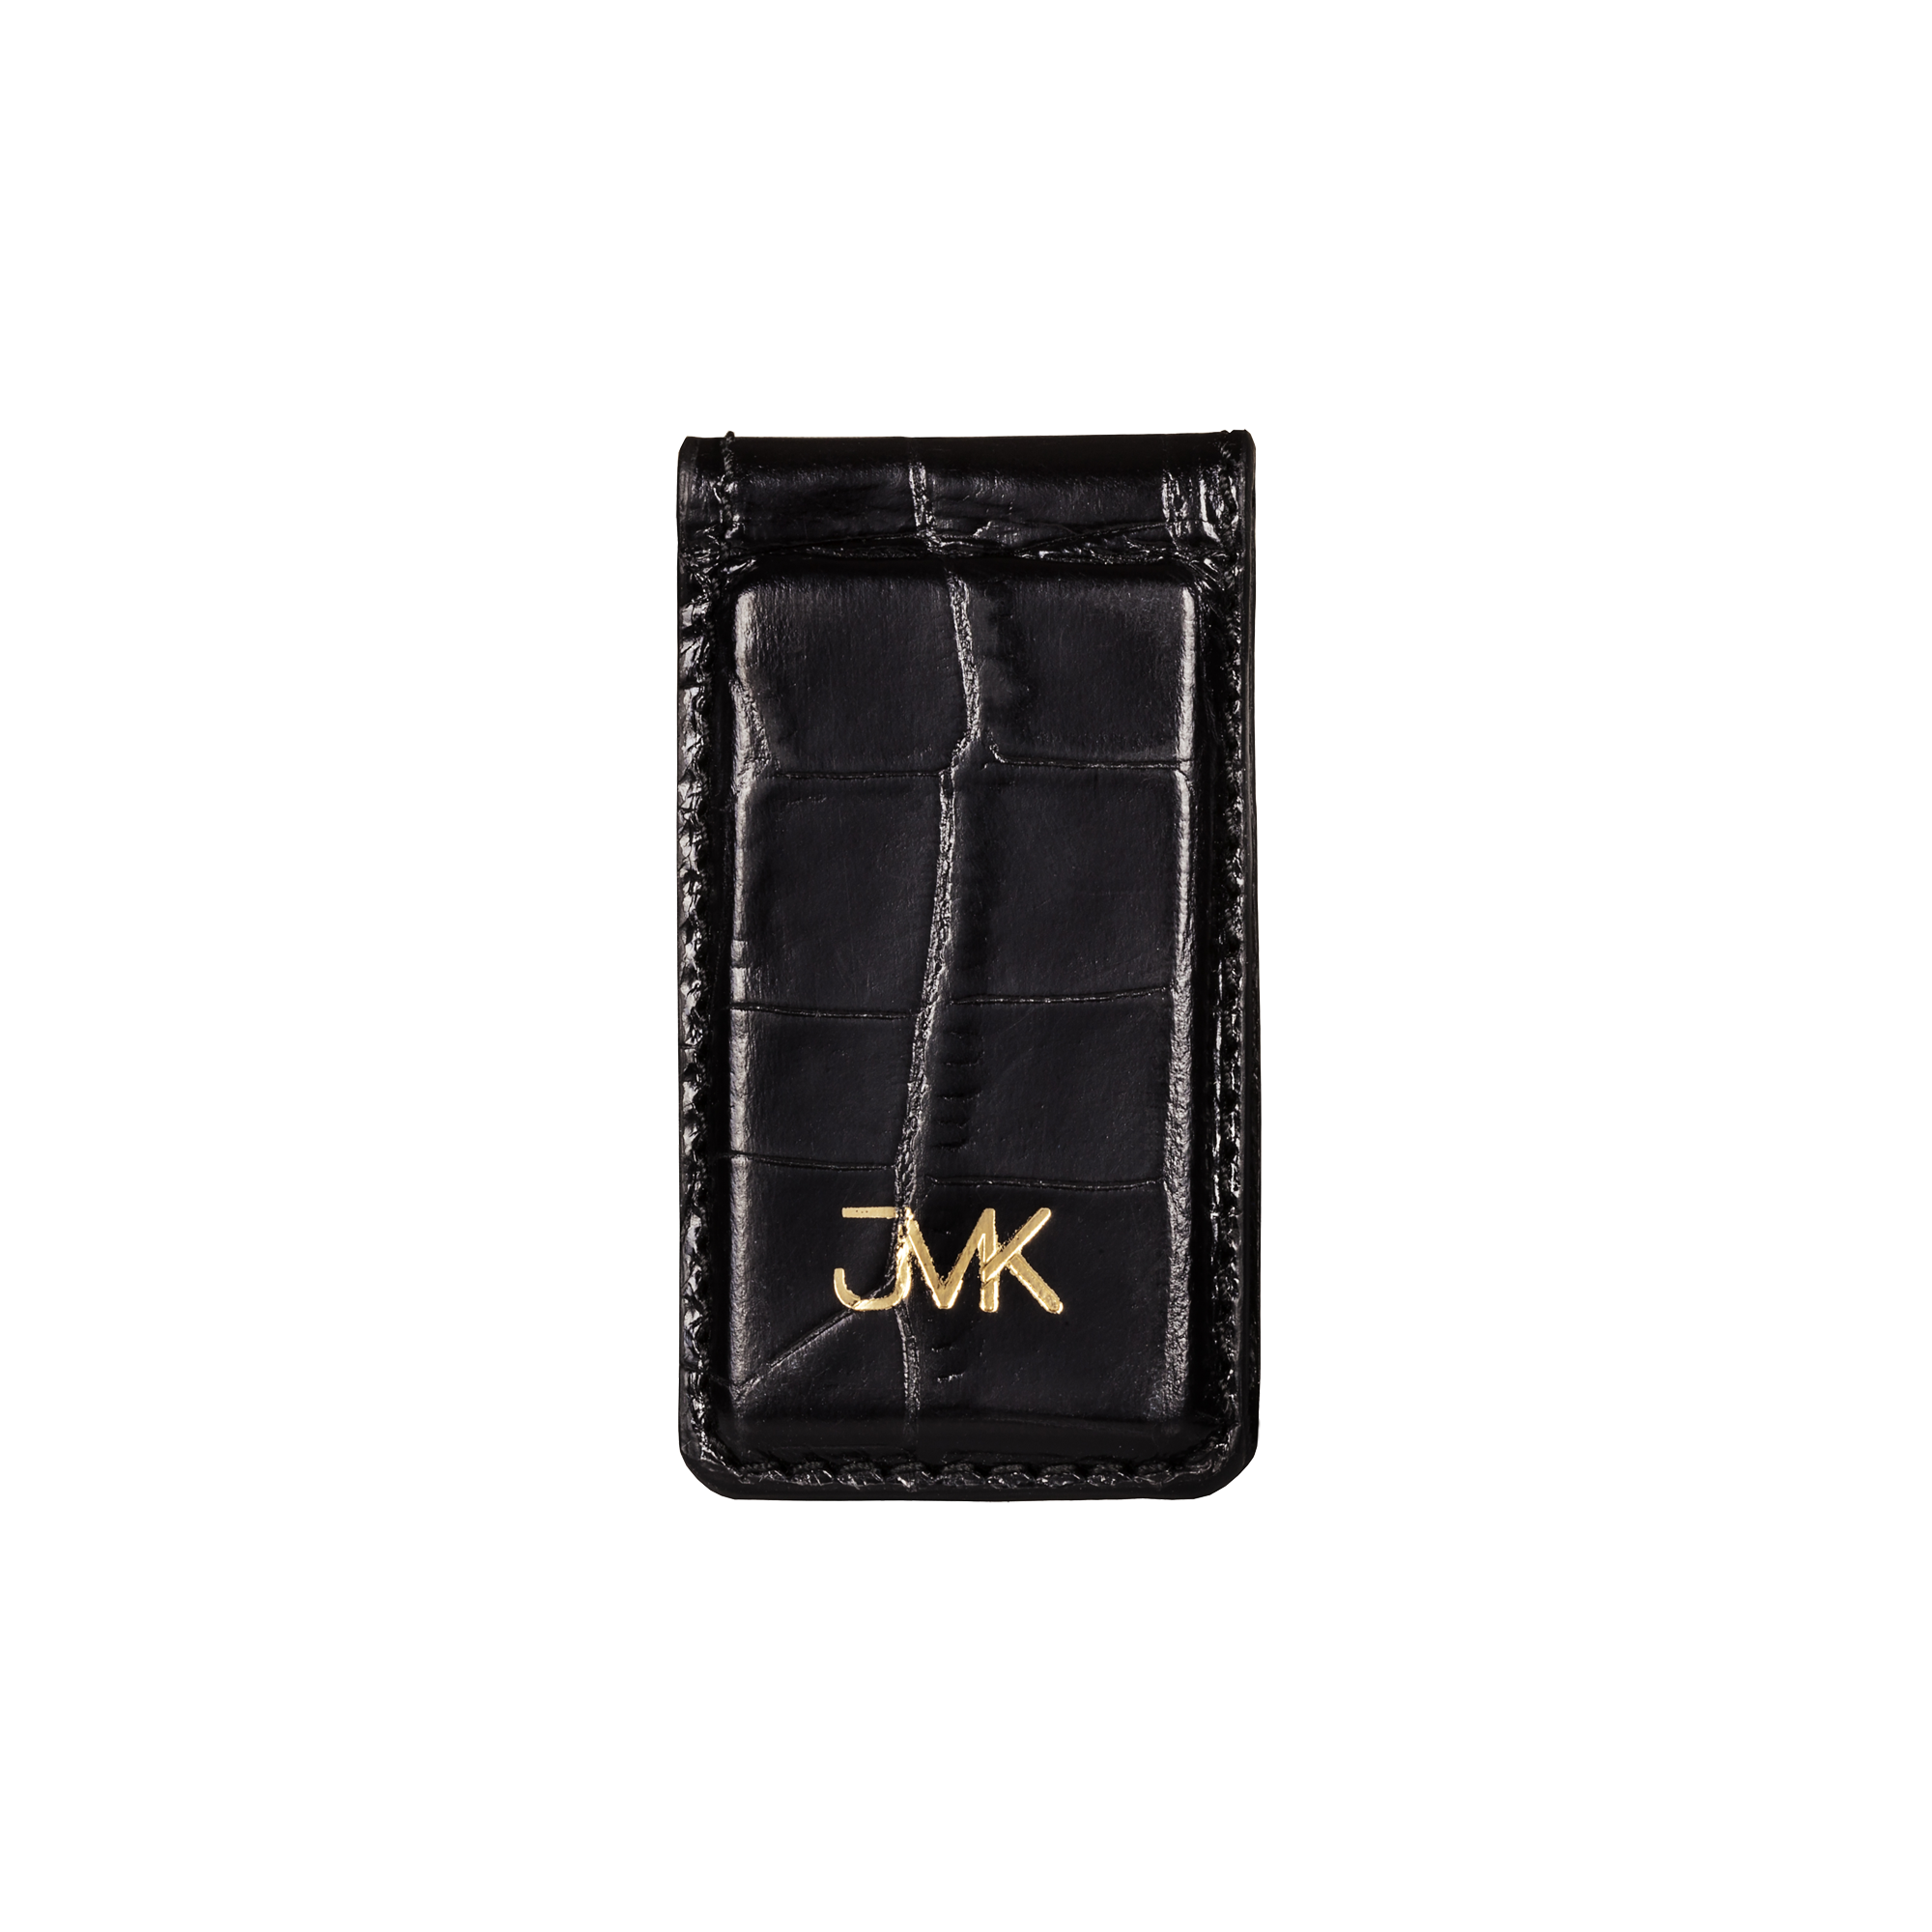 Money Clip, Croco Leather Black/Red, MAISON JMK-VONMEL Luxe Gifts